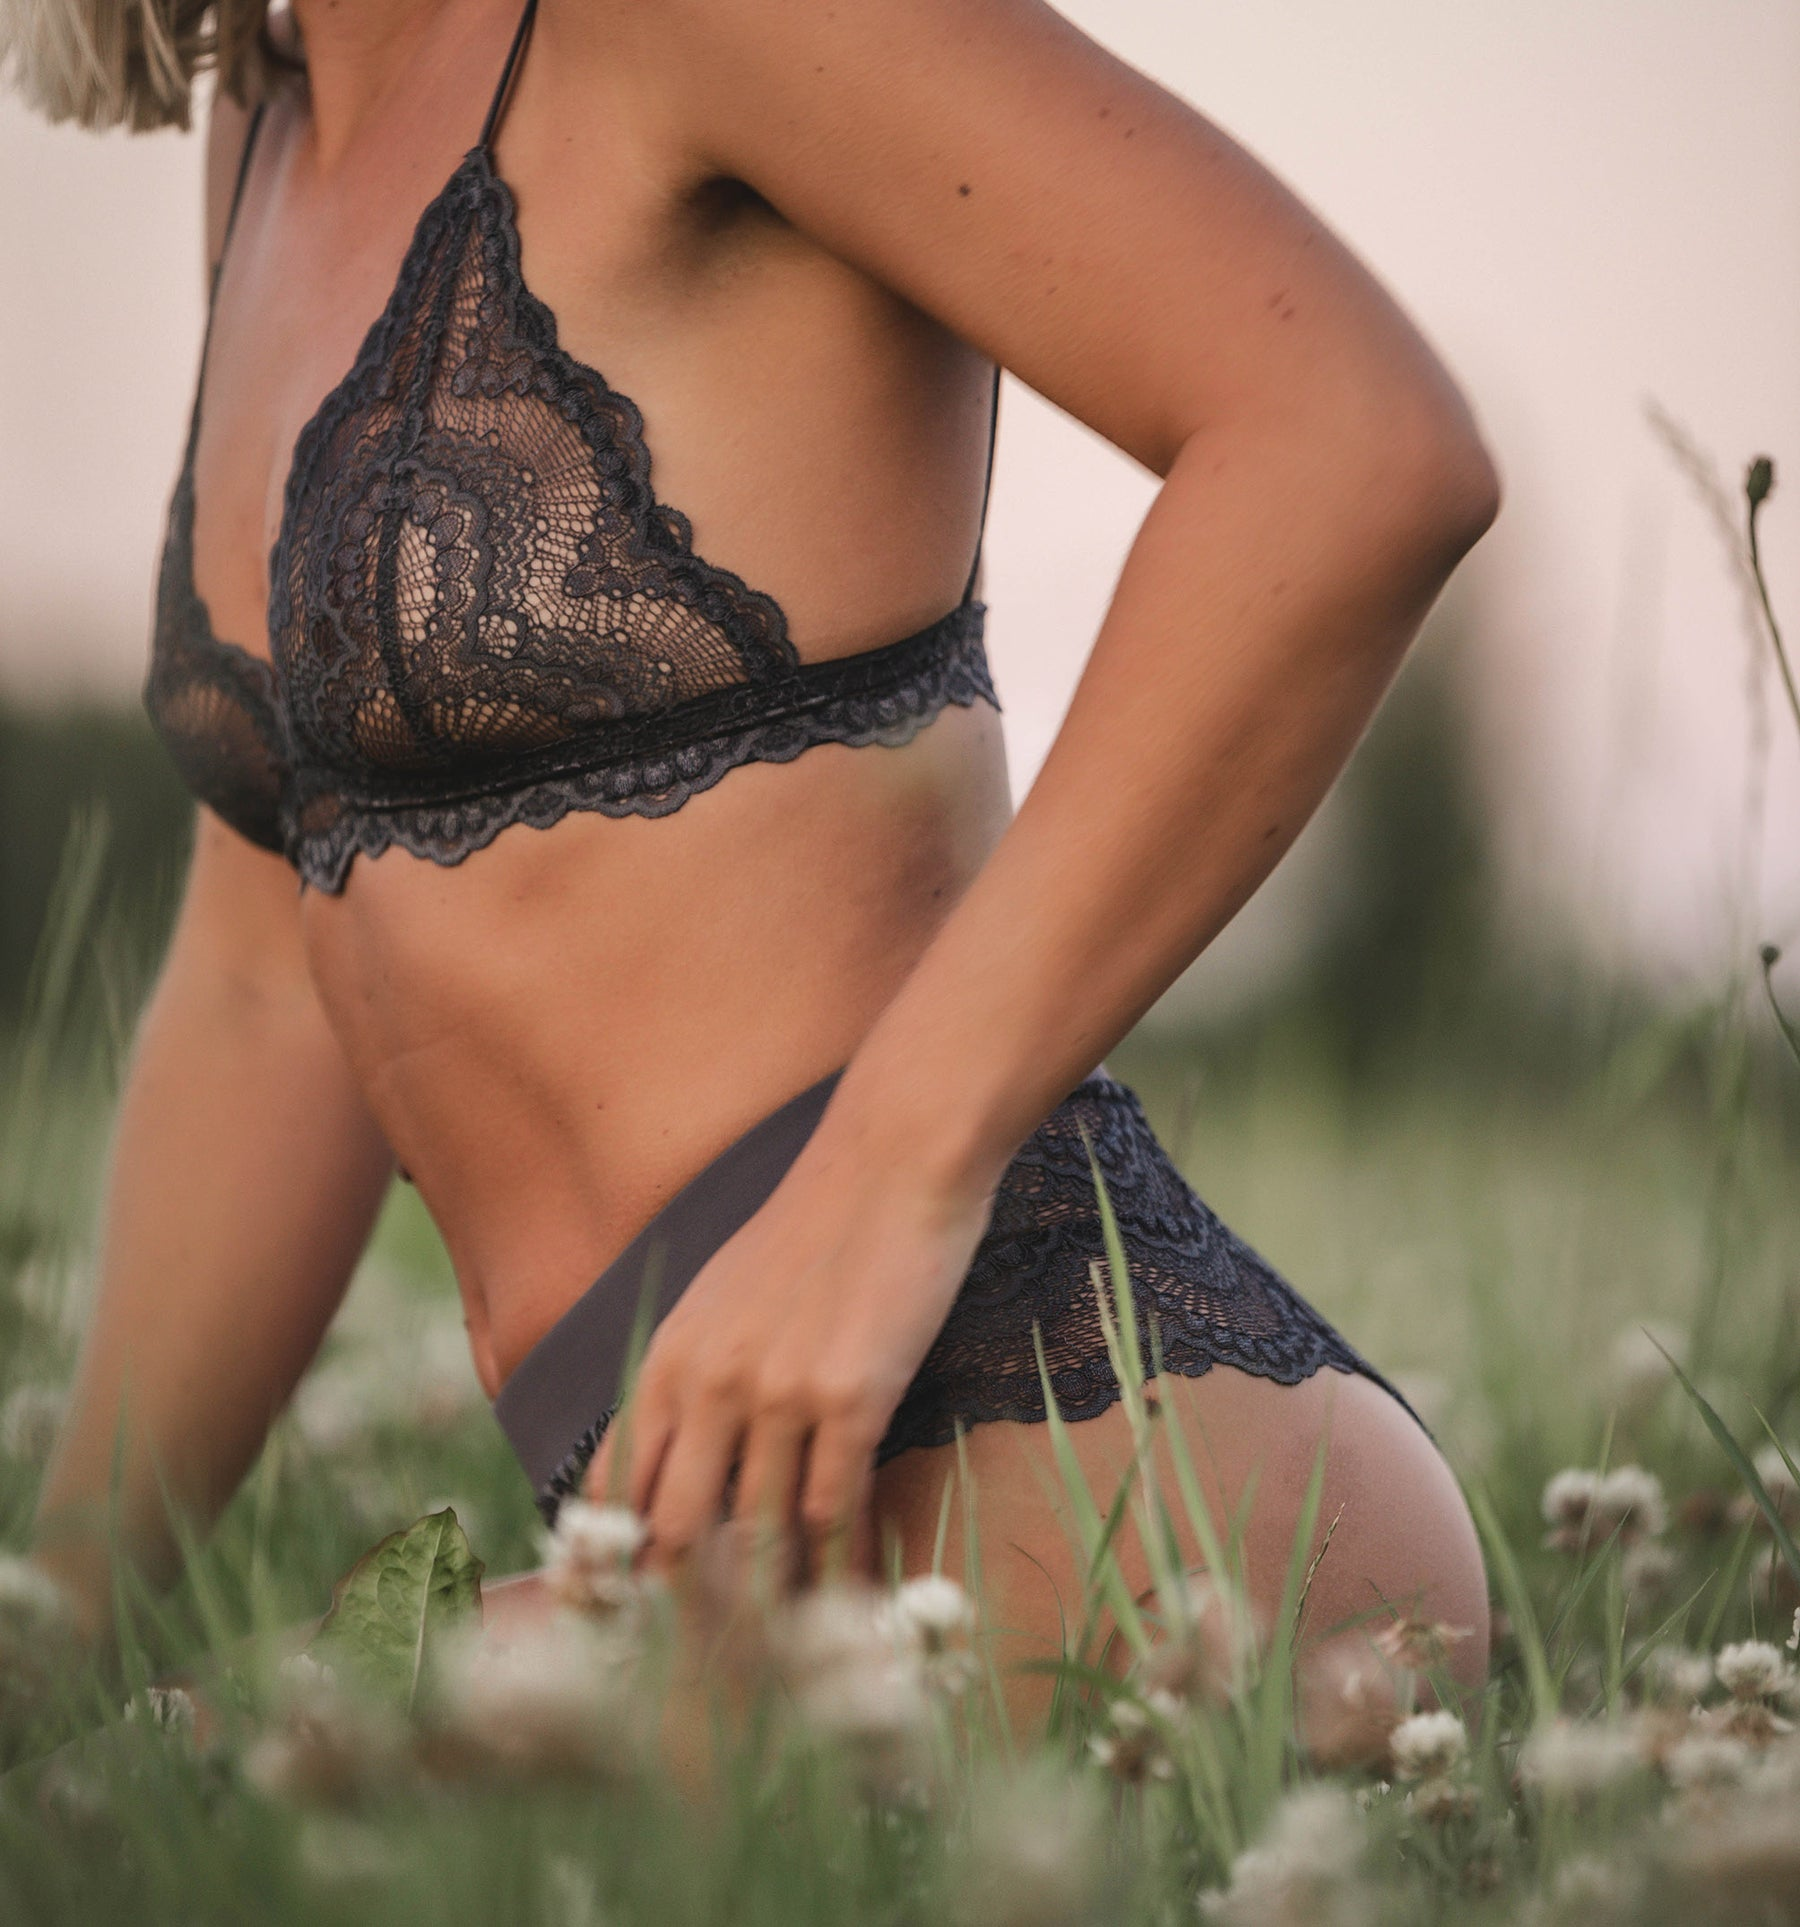 Mrs. Grey Lace Underwear